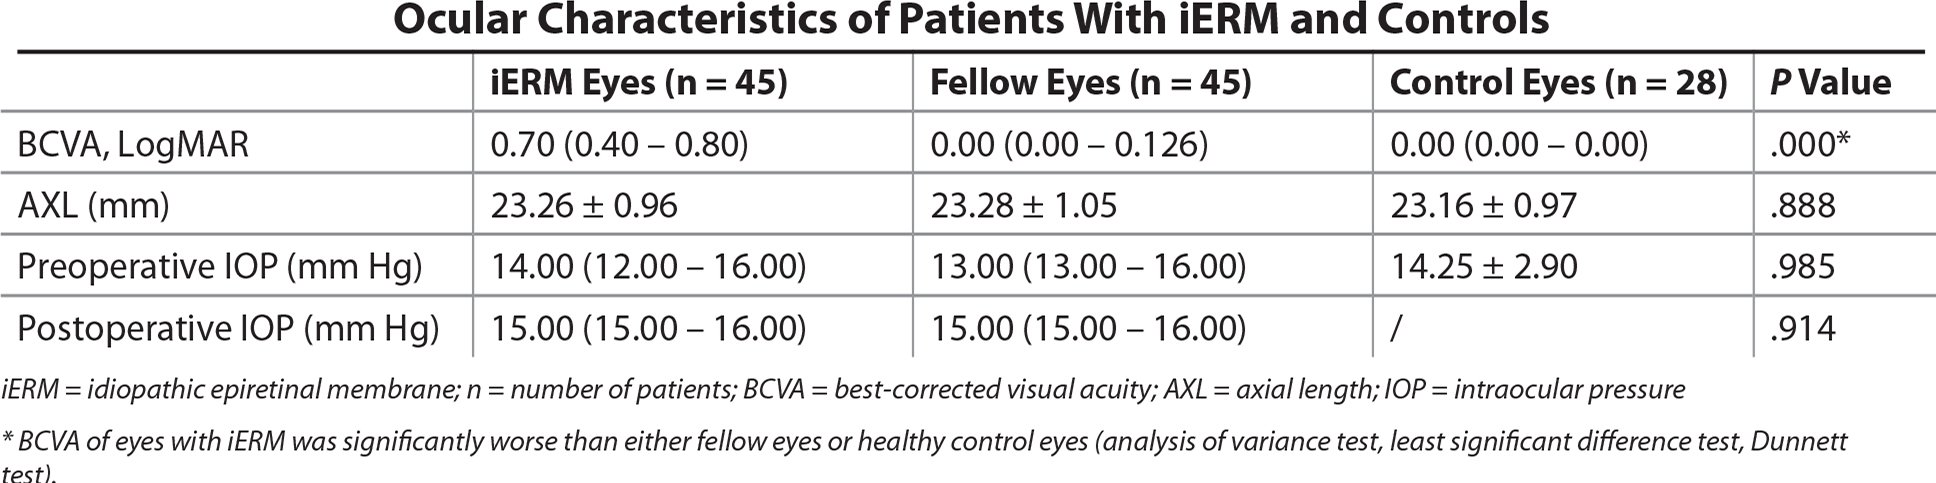 Ocular Characteristics of Patients With iERM and Controls